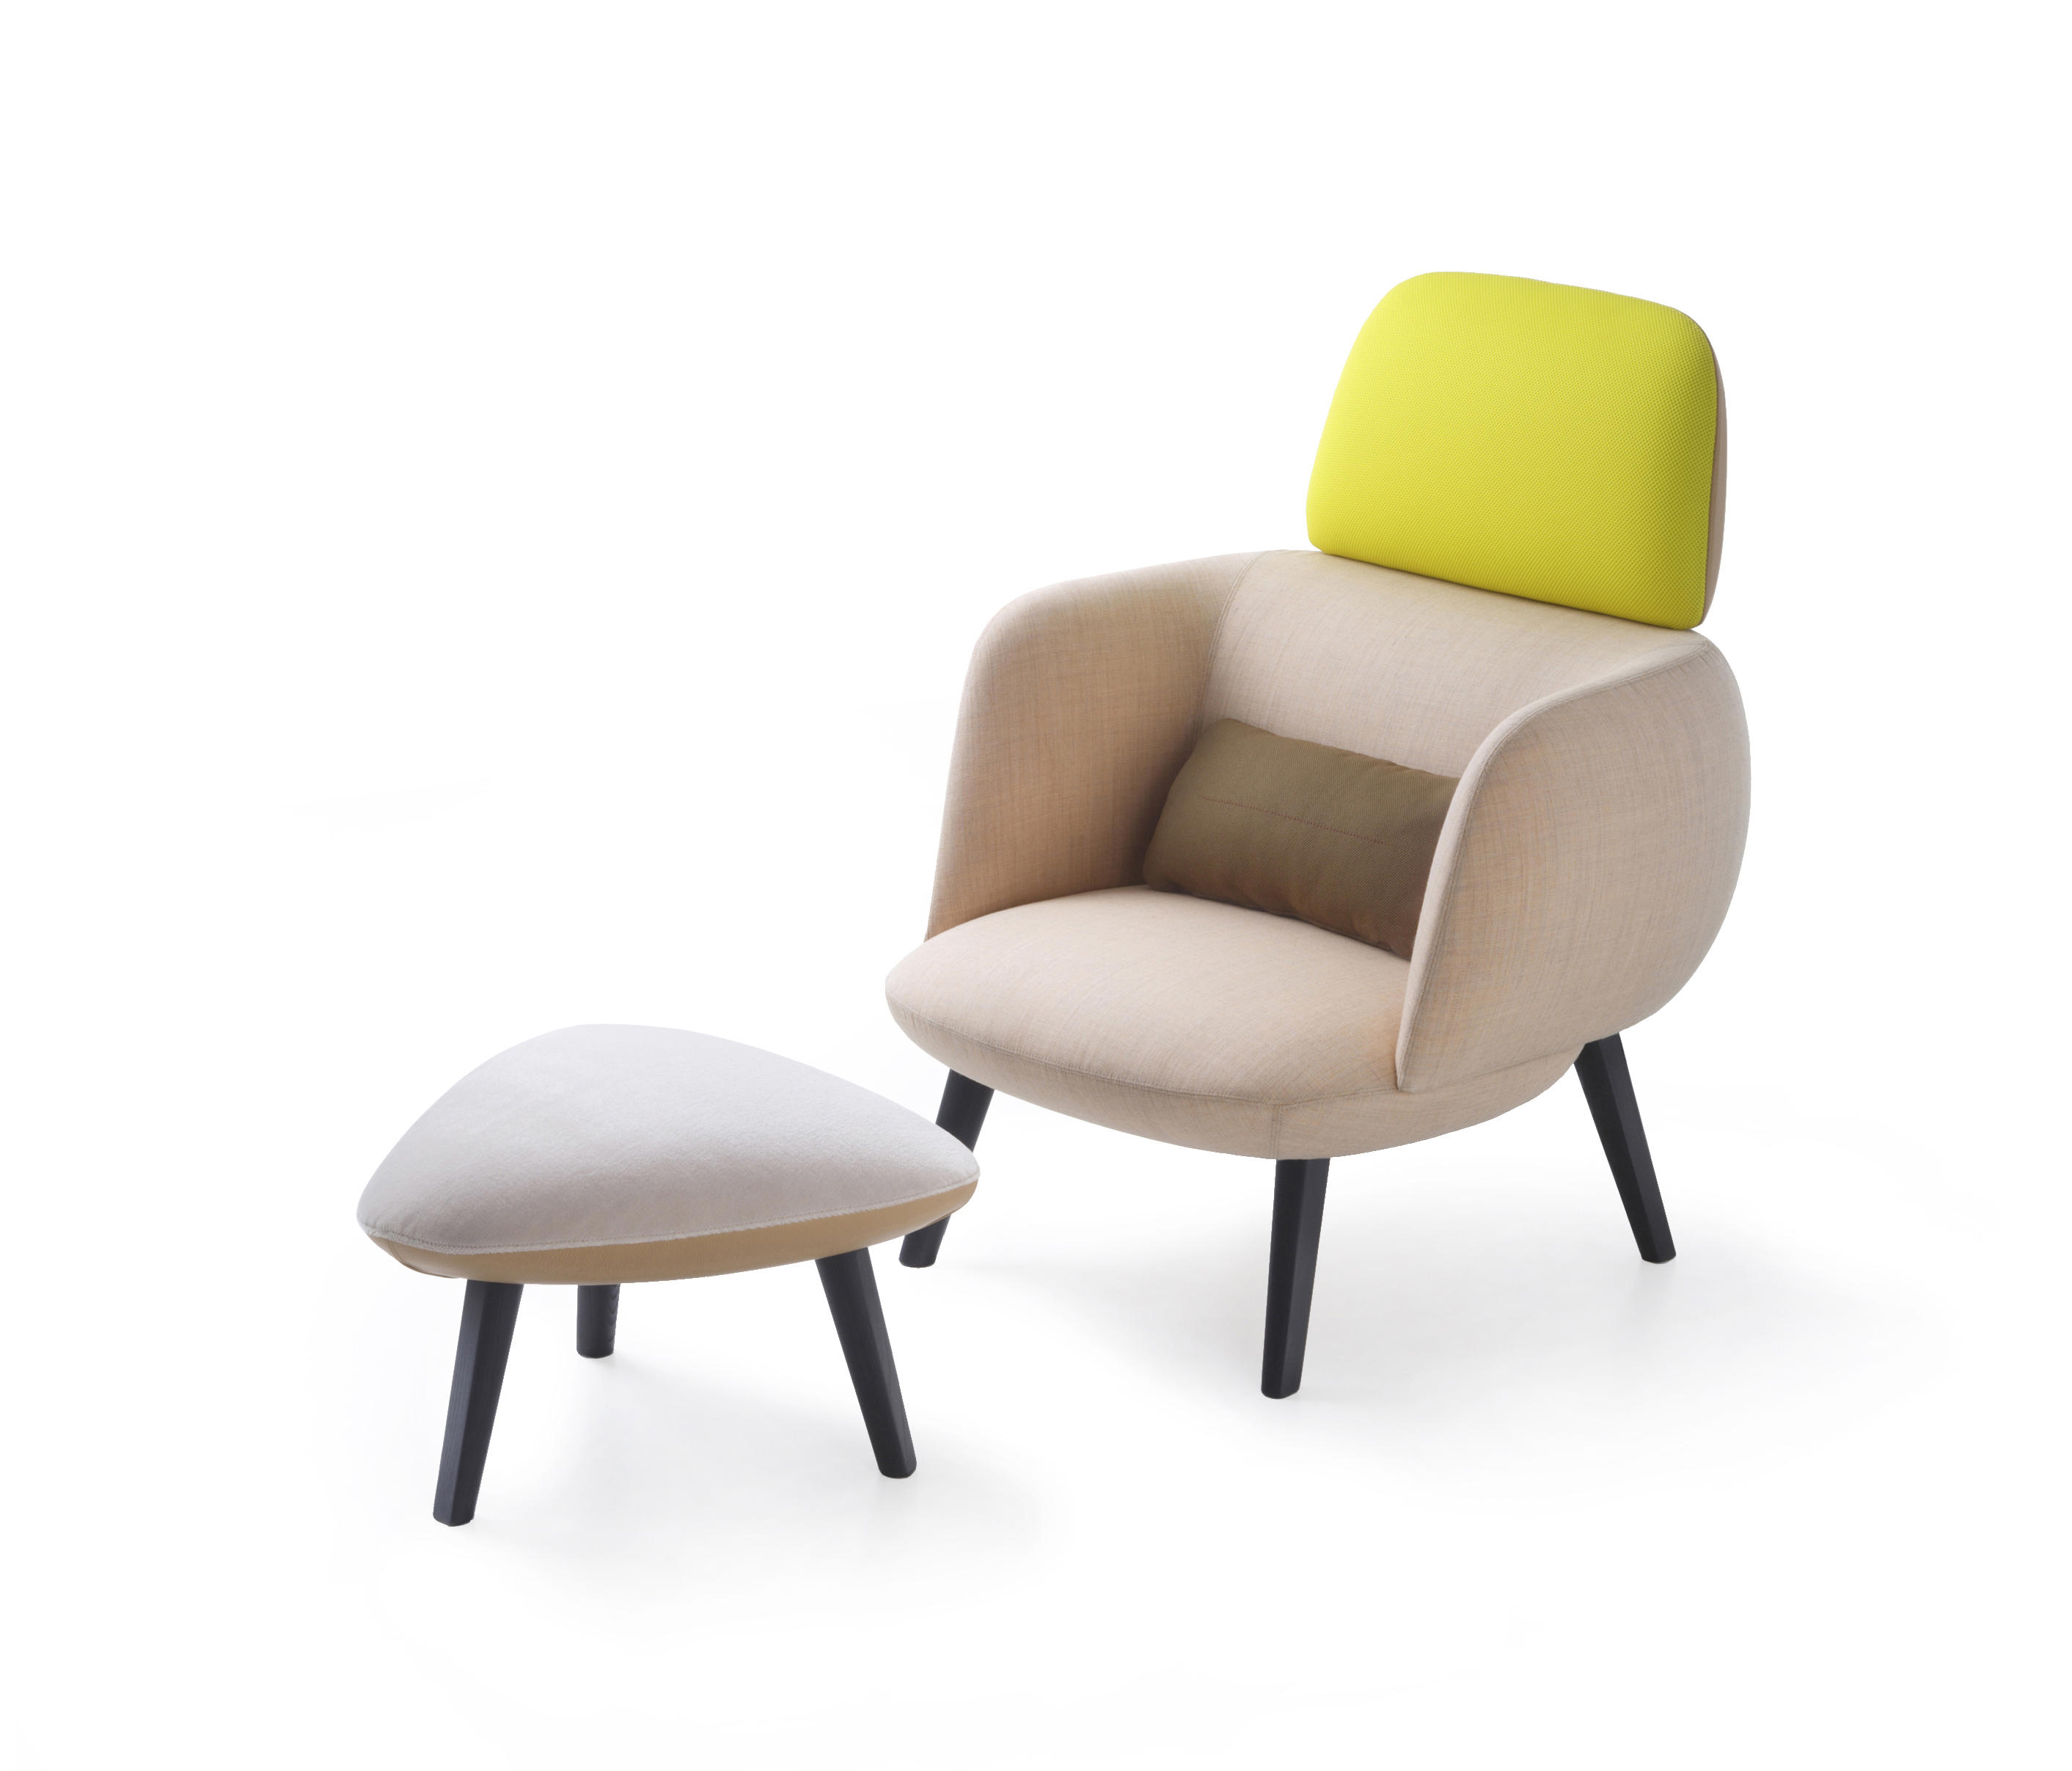 BETTY SCHIENALE ALTO E POUFF - Poltrone lounge Maxdesign | Architonic